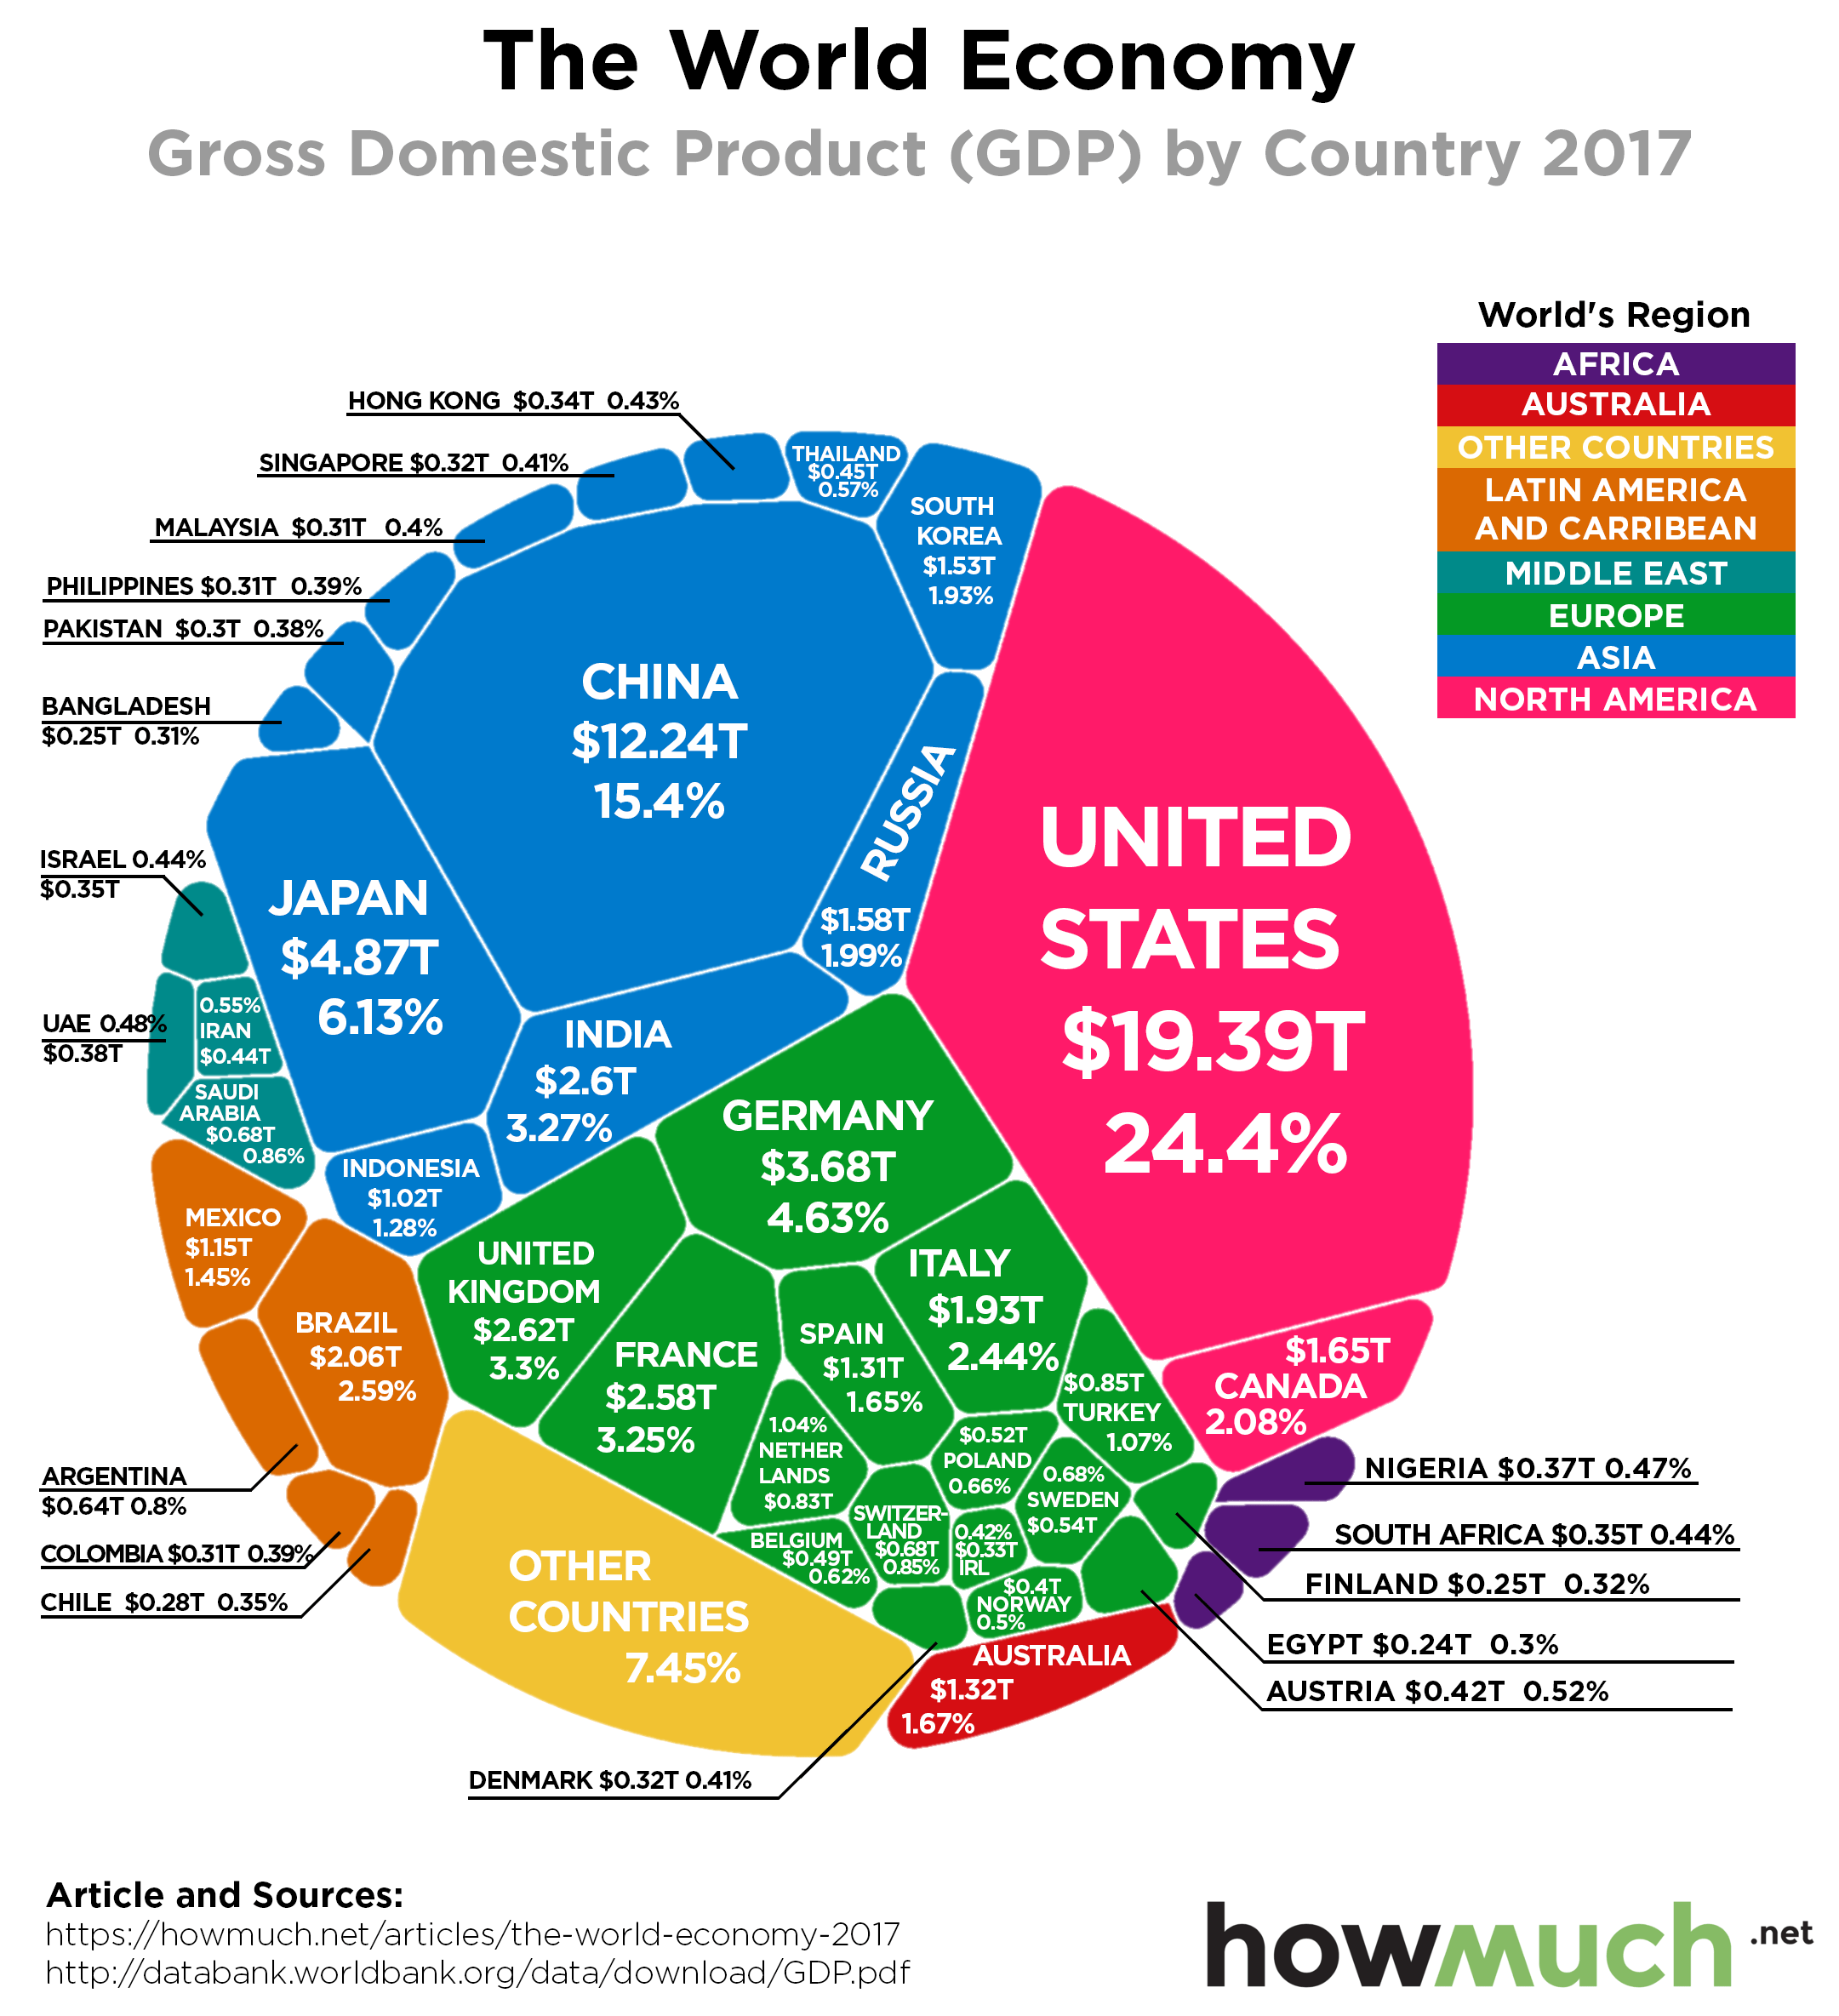 world-economy-by-gdp-2017-7c32.